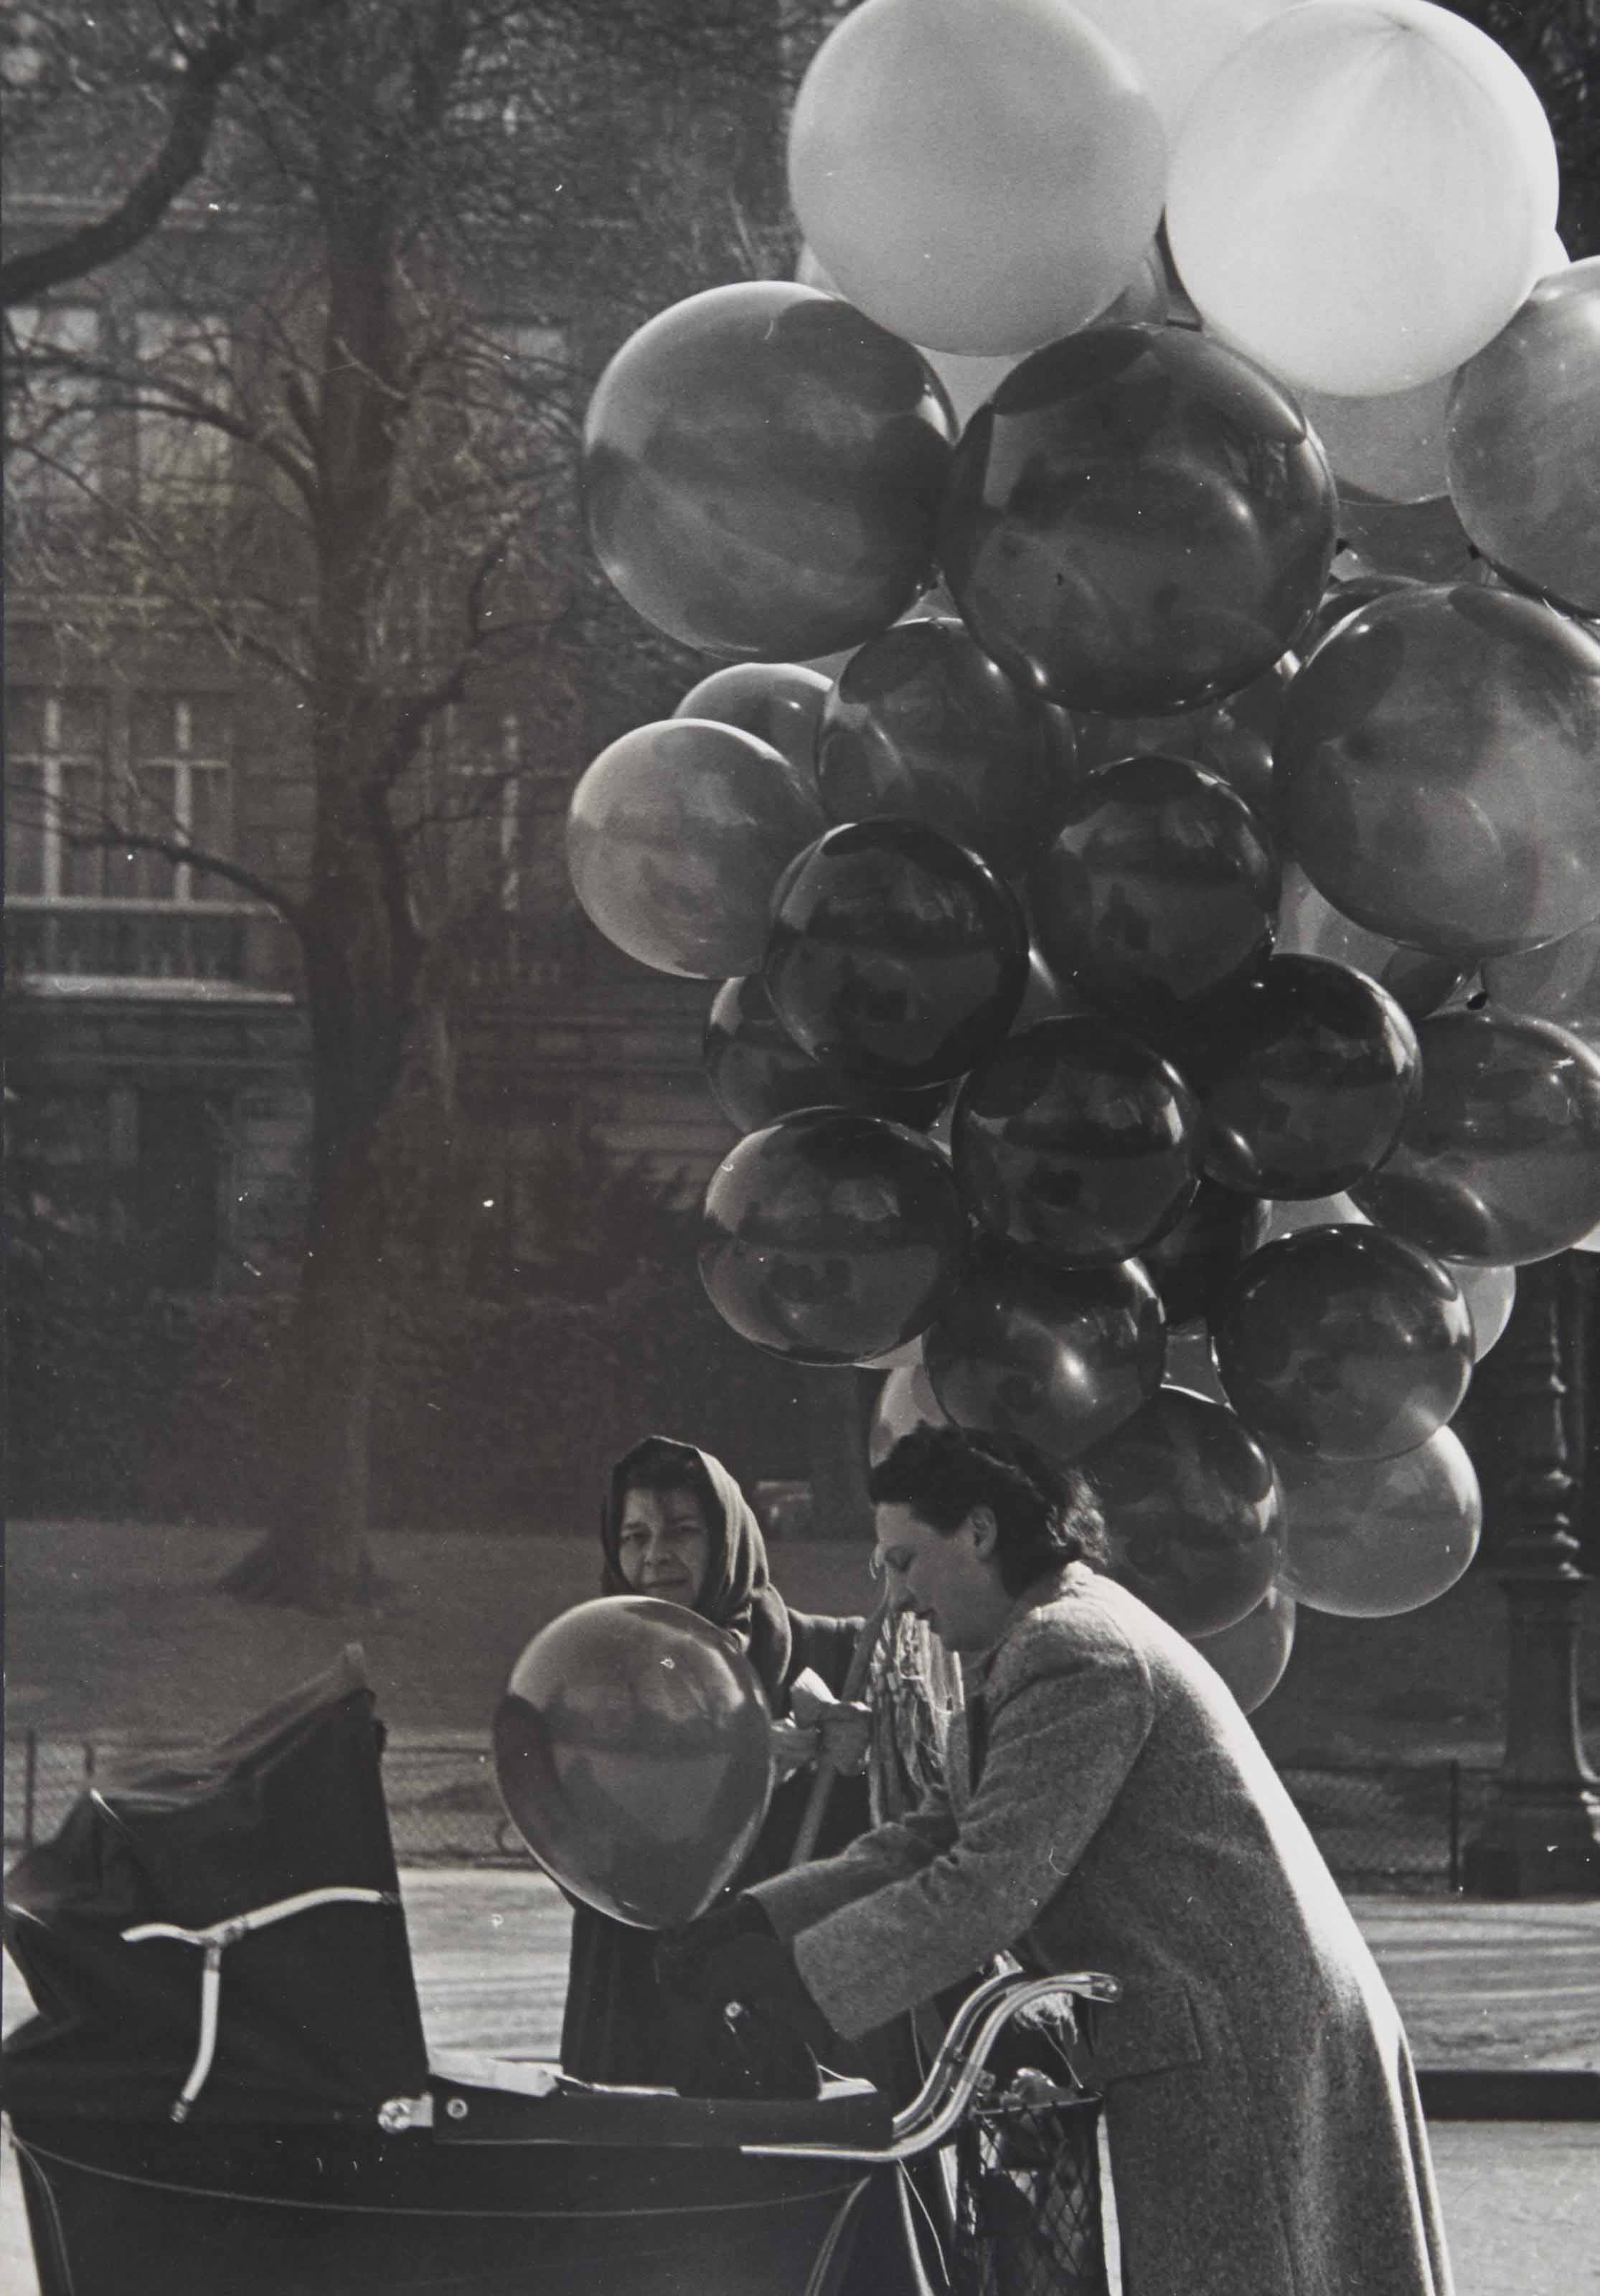 Vendeuse de ballons, Paris, vers 1950